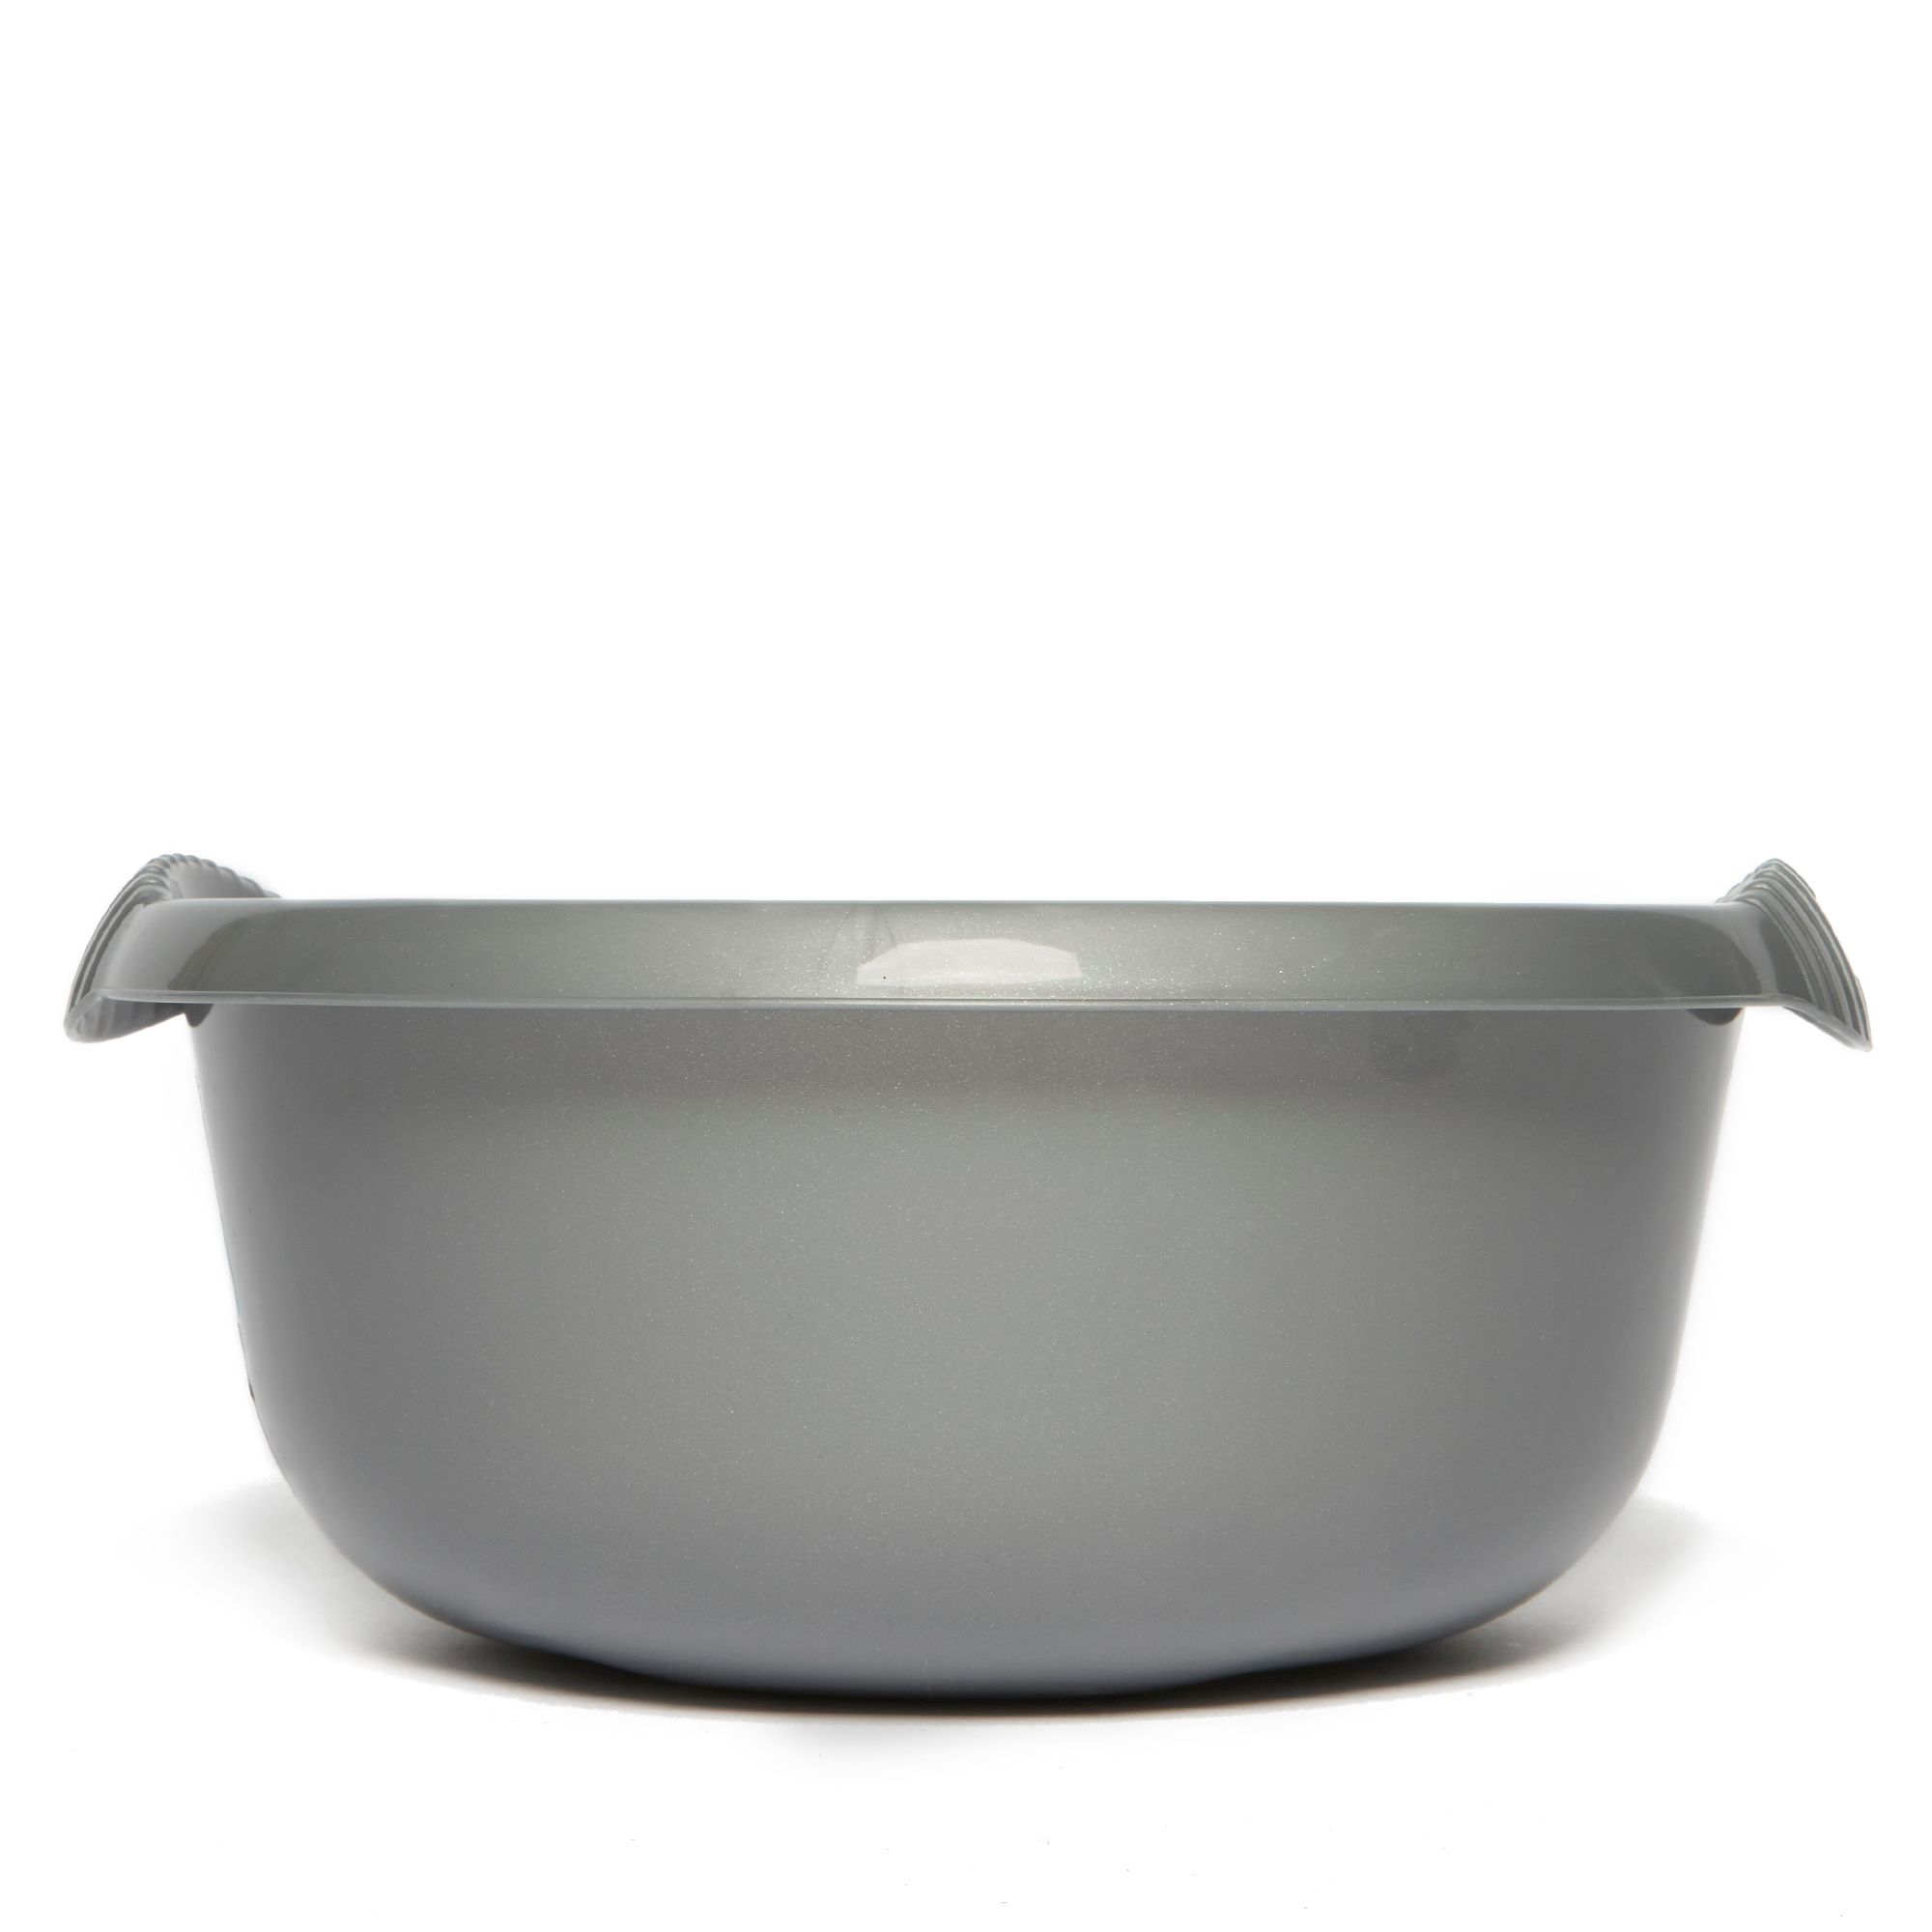 WHAM 28cm Round Washing Up Bowl